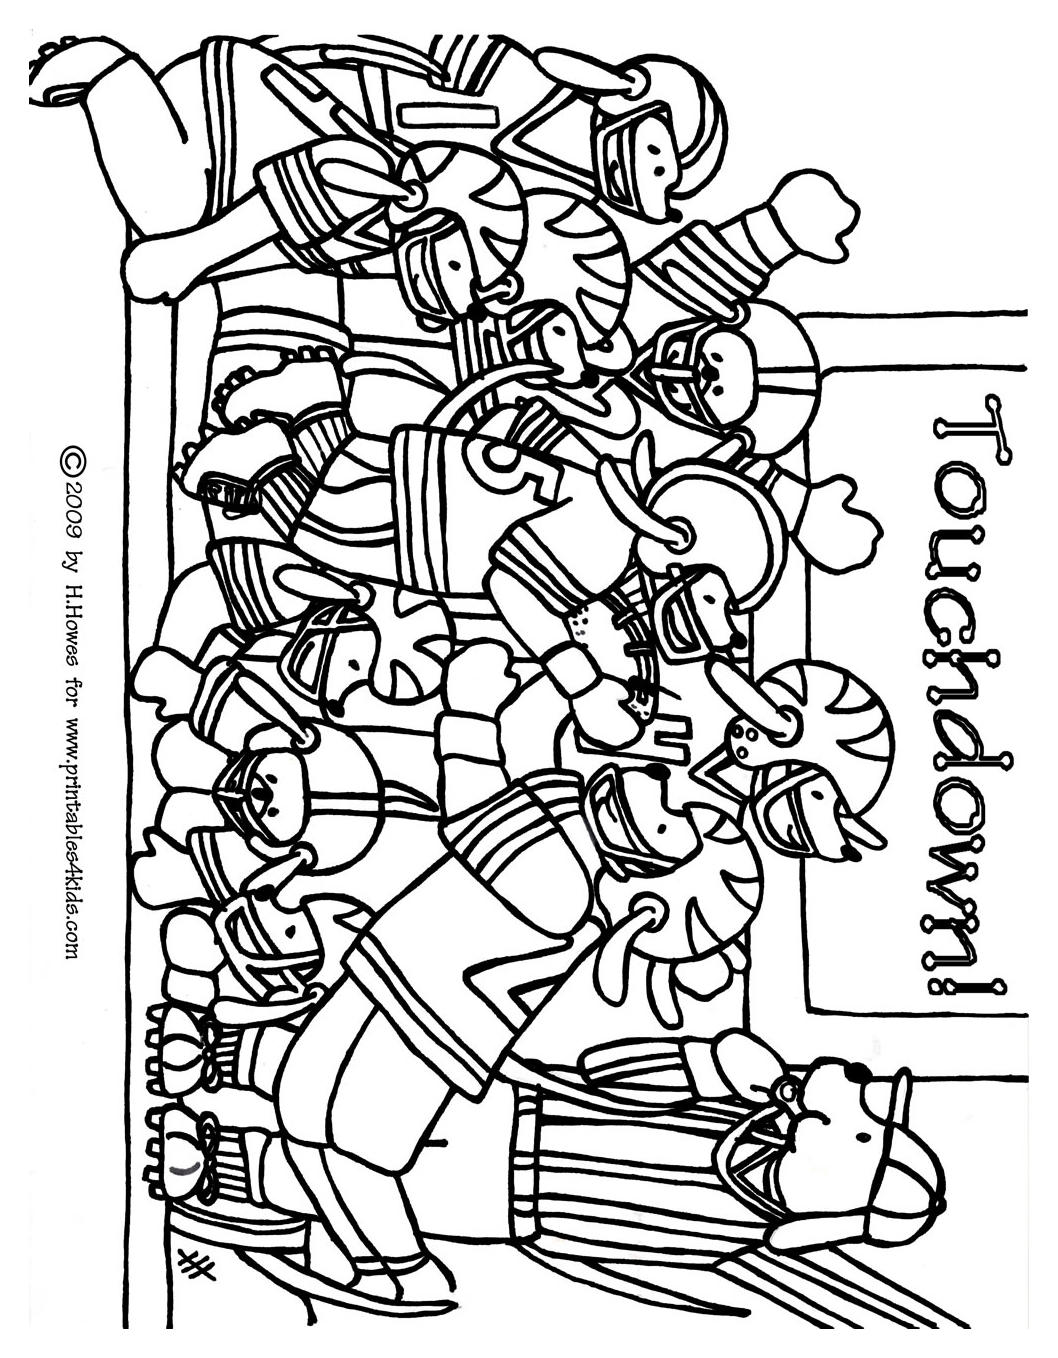 Football Game Coloring Pages - Coloring Home